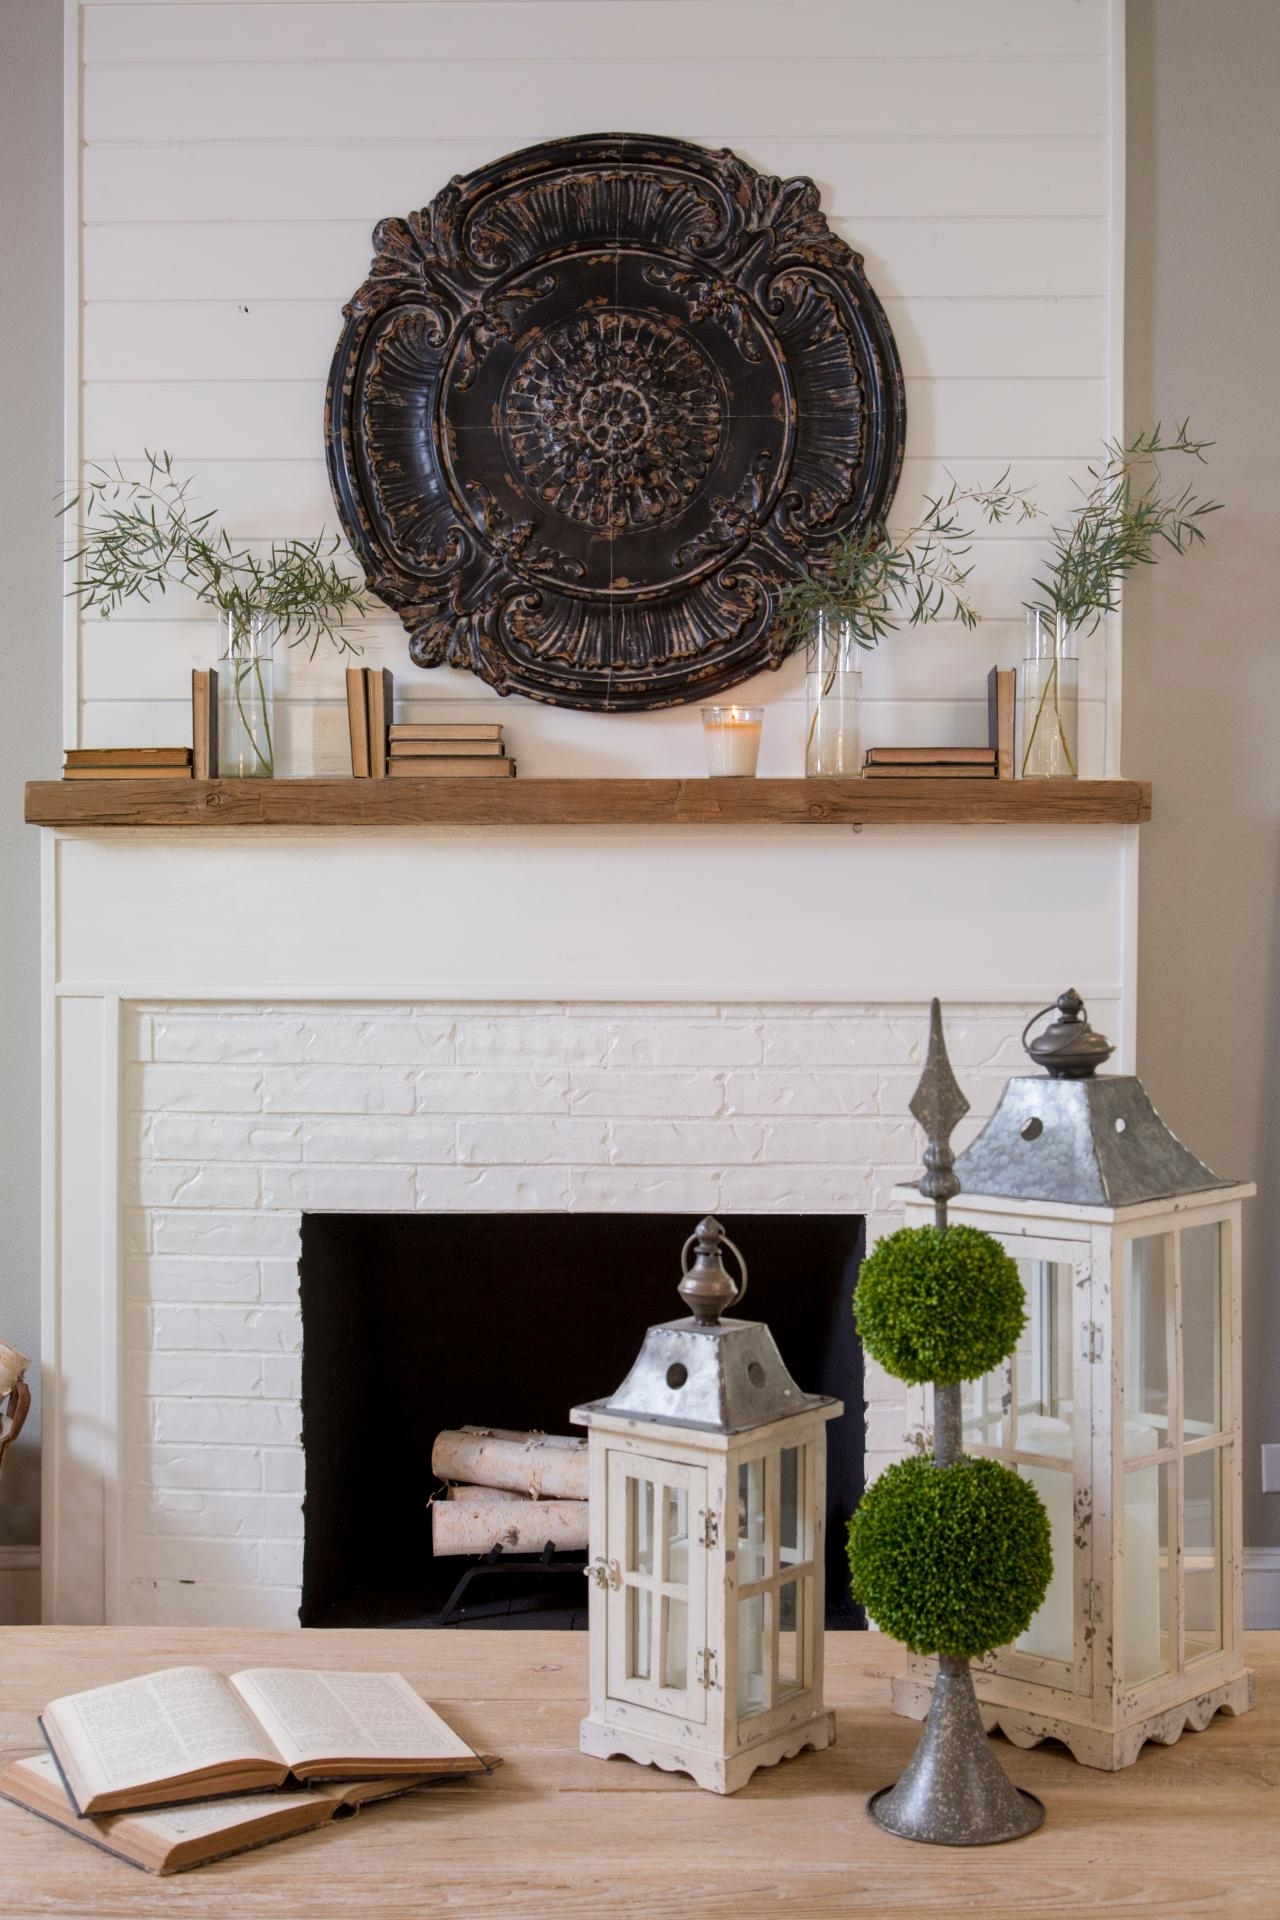 Hgtv's Decorating & Design Blog (View 4 of 15)